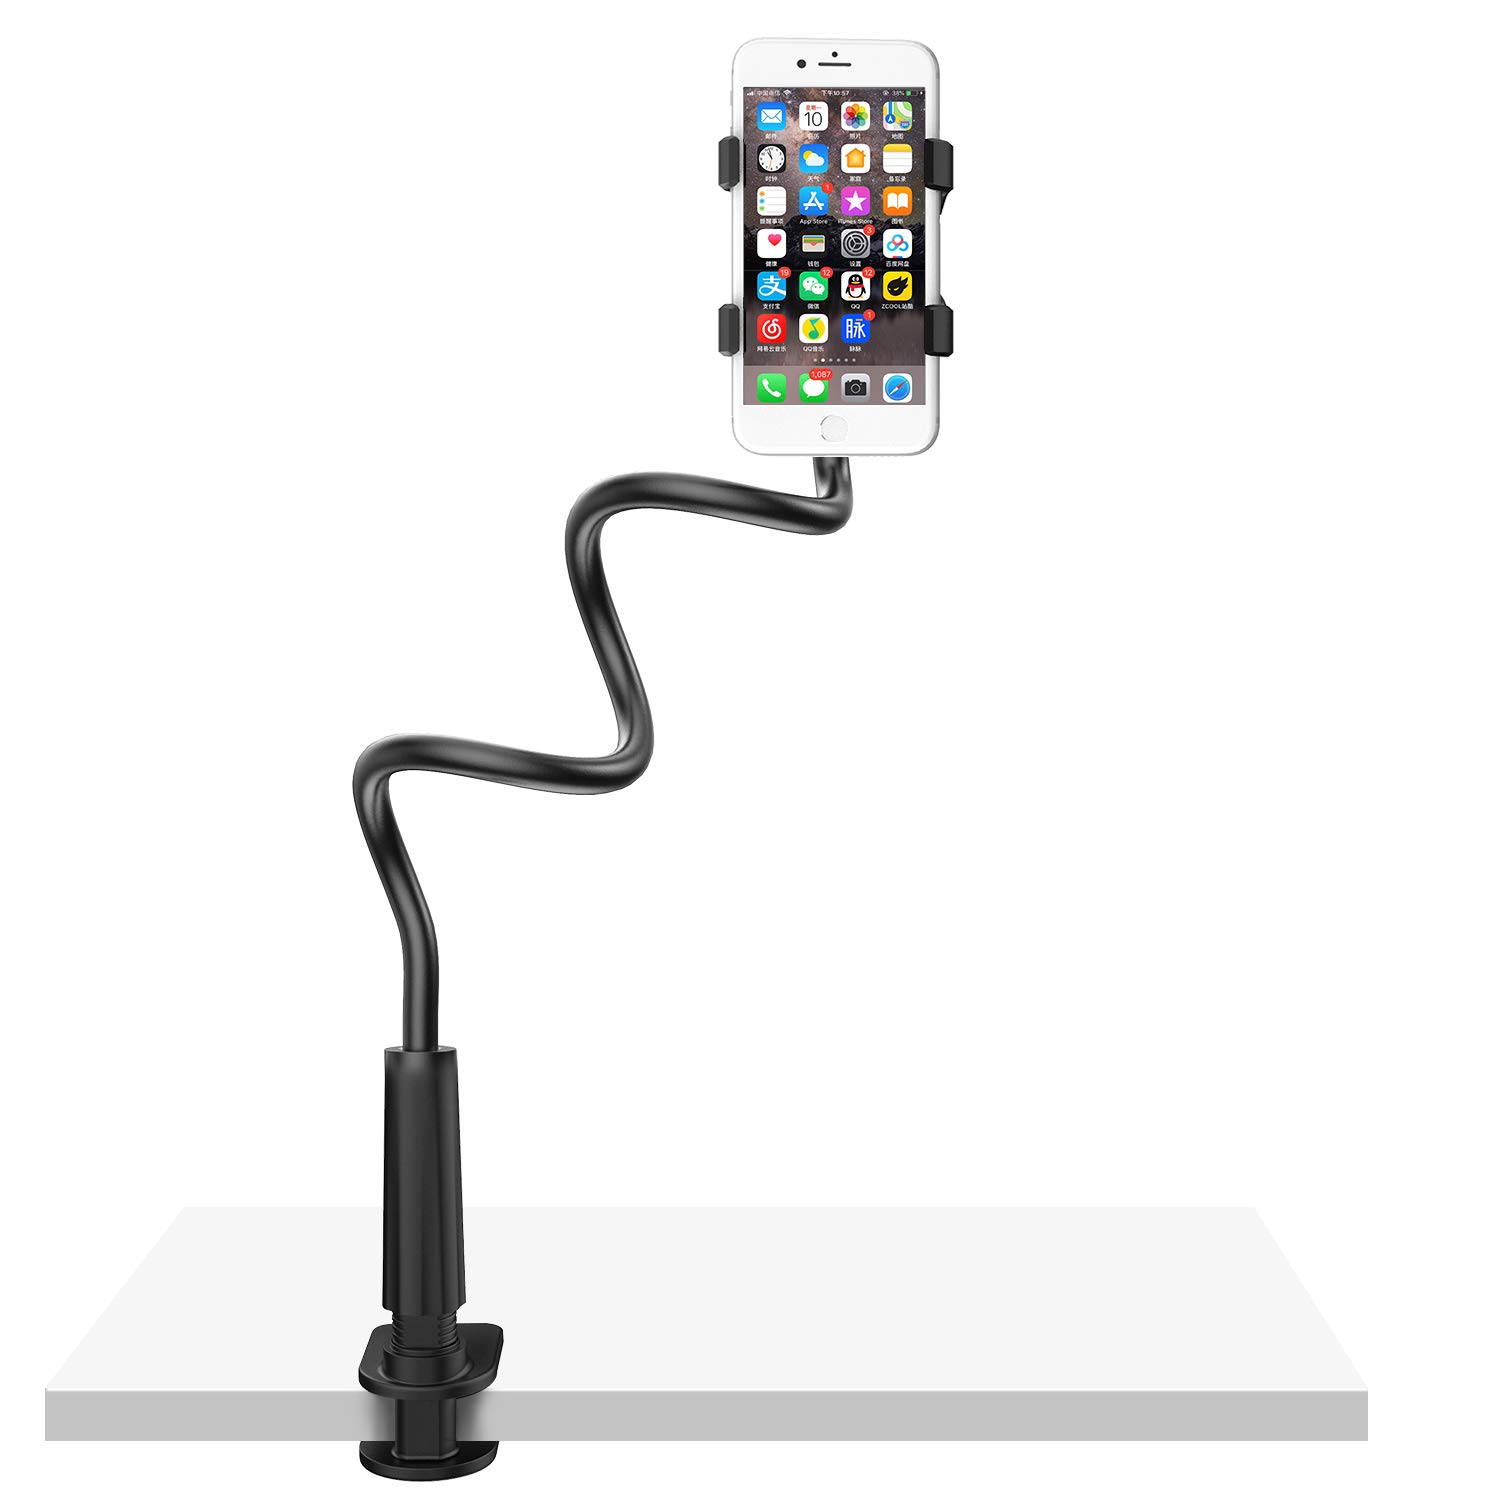 Gooseneck Cell Phone Holder Bed, Lazy Bracket, Universal Mobile Phone Clip Stand, Flexible Long Arm Rotating Mount for for Bed, Office, Kitchen, iPhone, pad, Watching Movies by Alimu